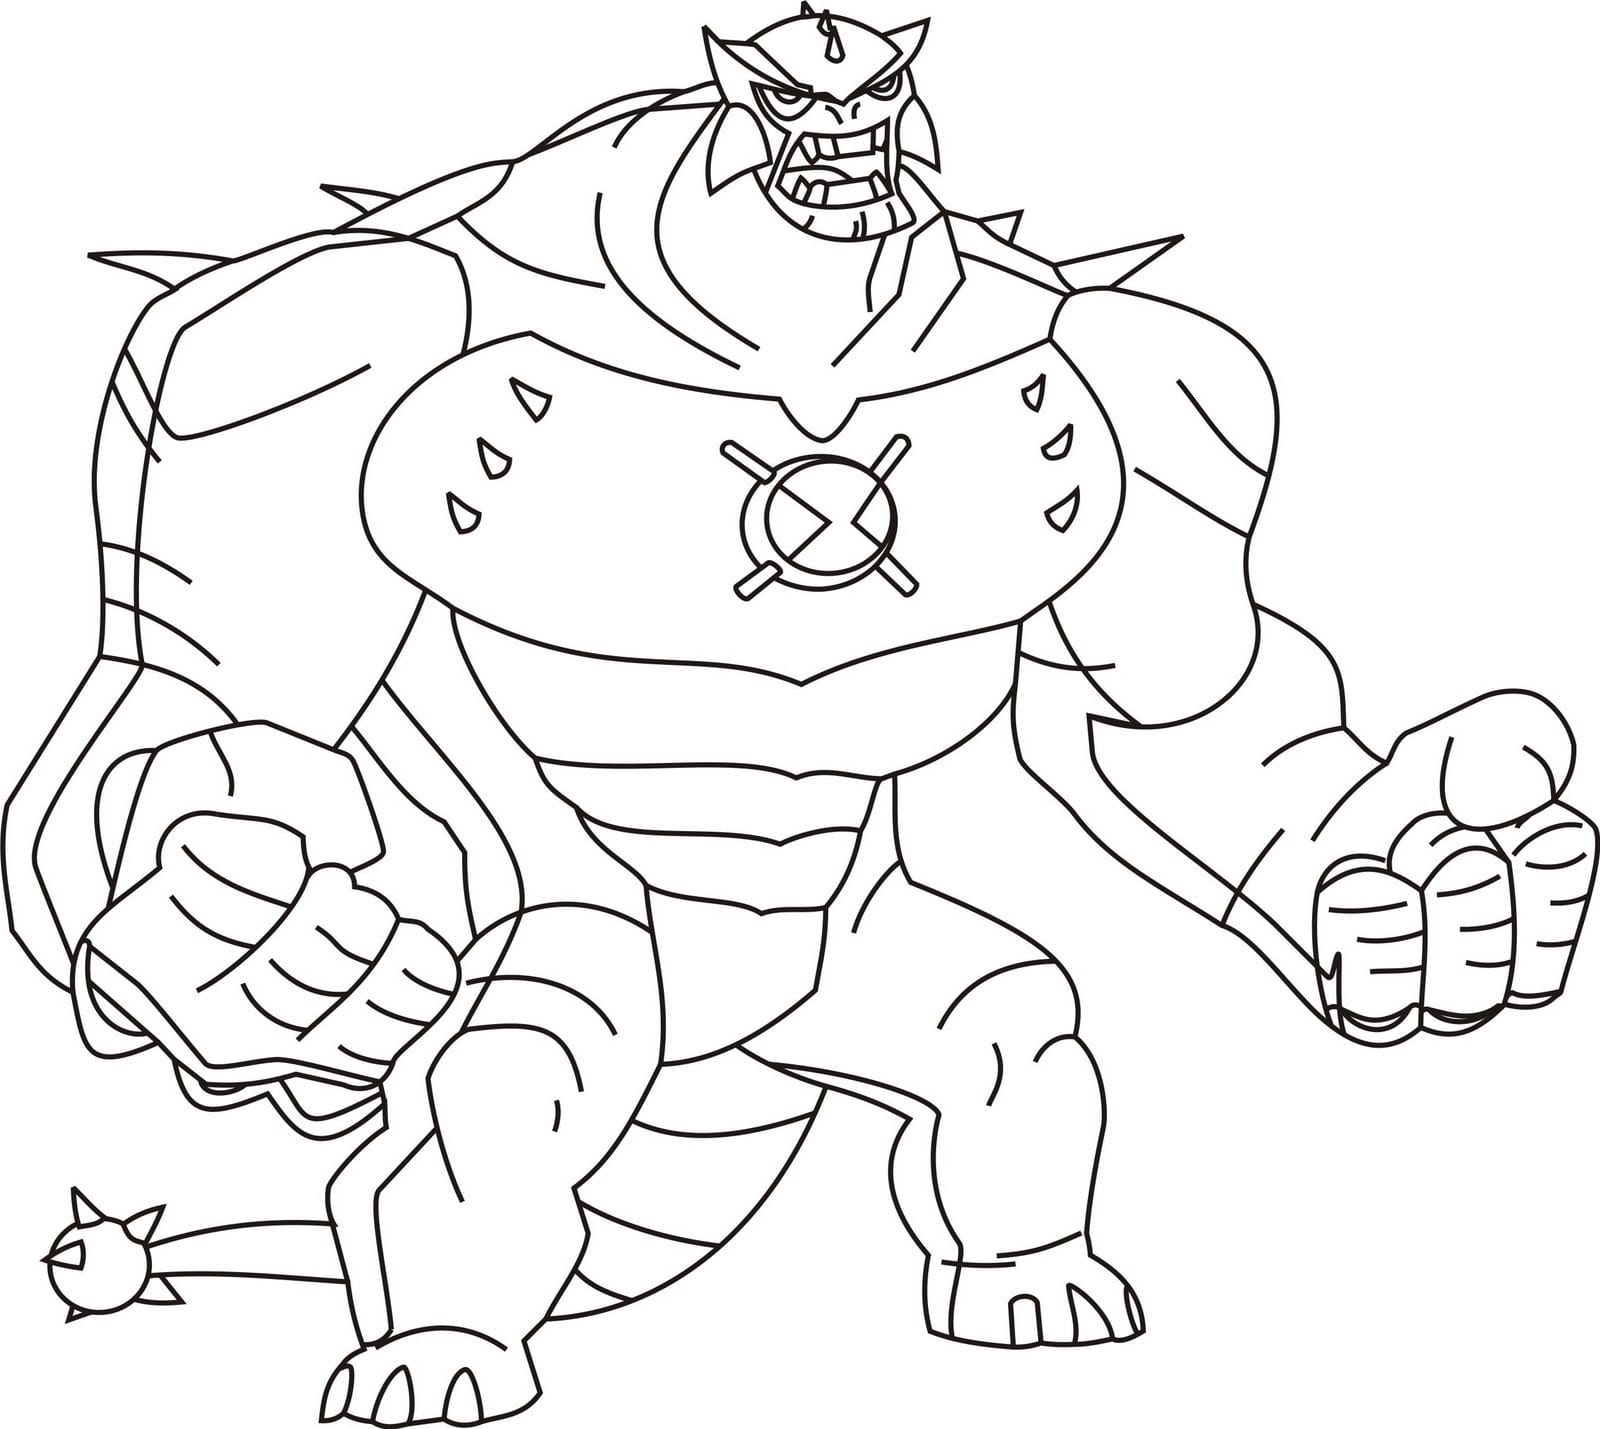 Ben 10 Coloring Pages Coloring Kids Colouring Sheets 1304